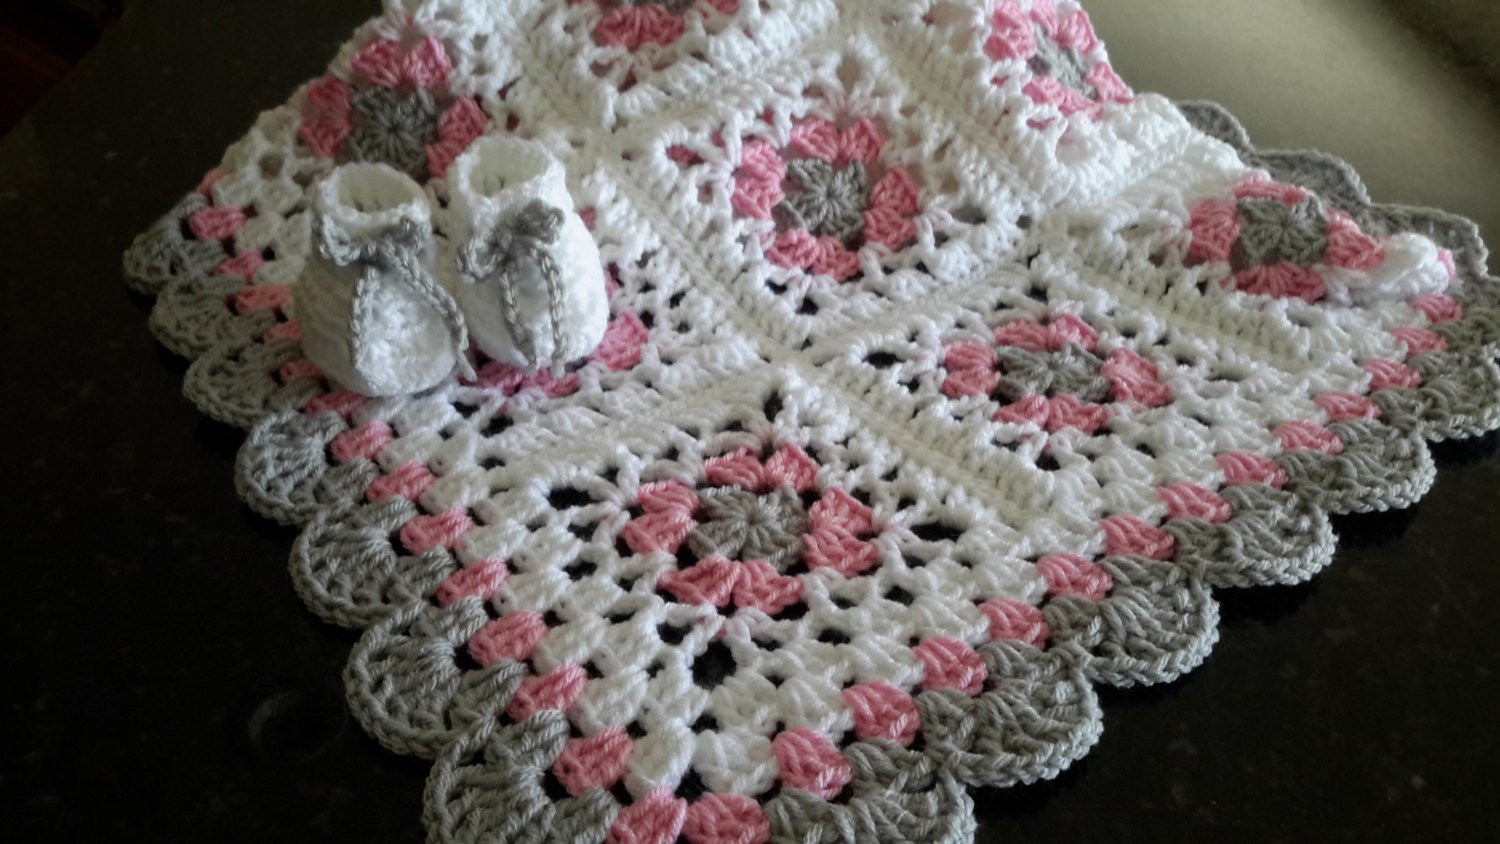 New Baby Girl Lacy Granny Square Baby Crochet Blanket Afghan Granny Square Baby Blanket Of Amazing 41 Pictures Granny Square Baby Blanket